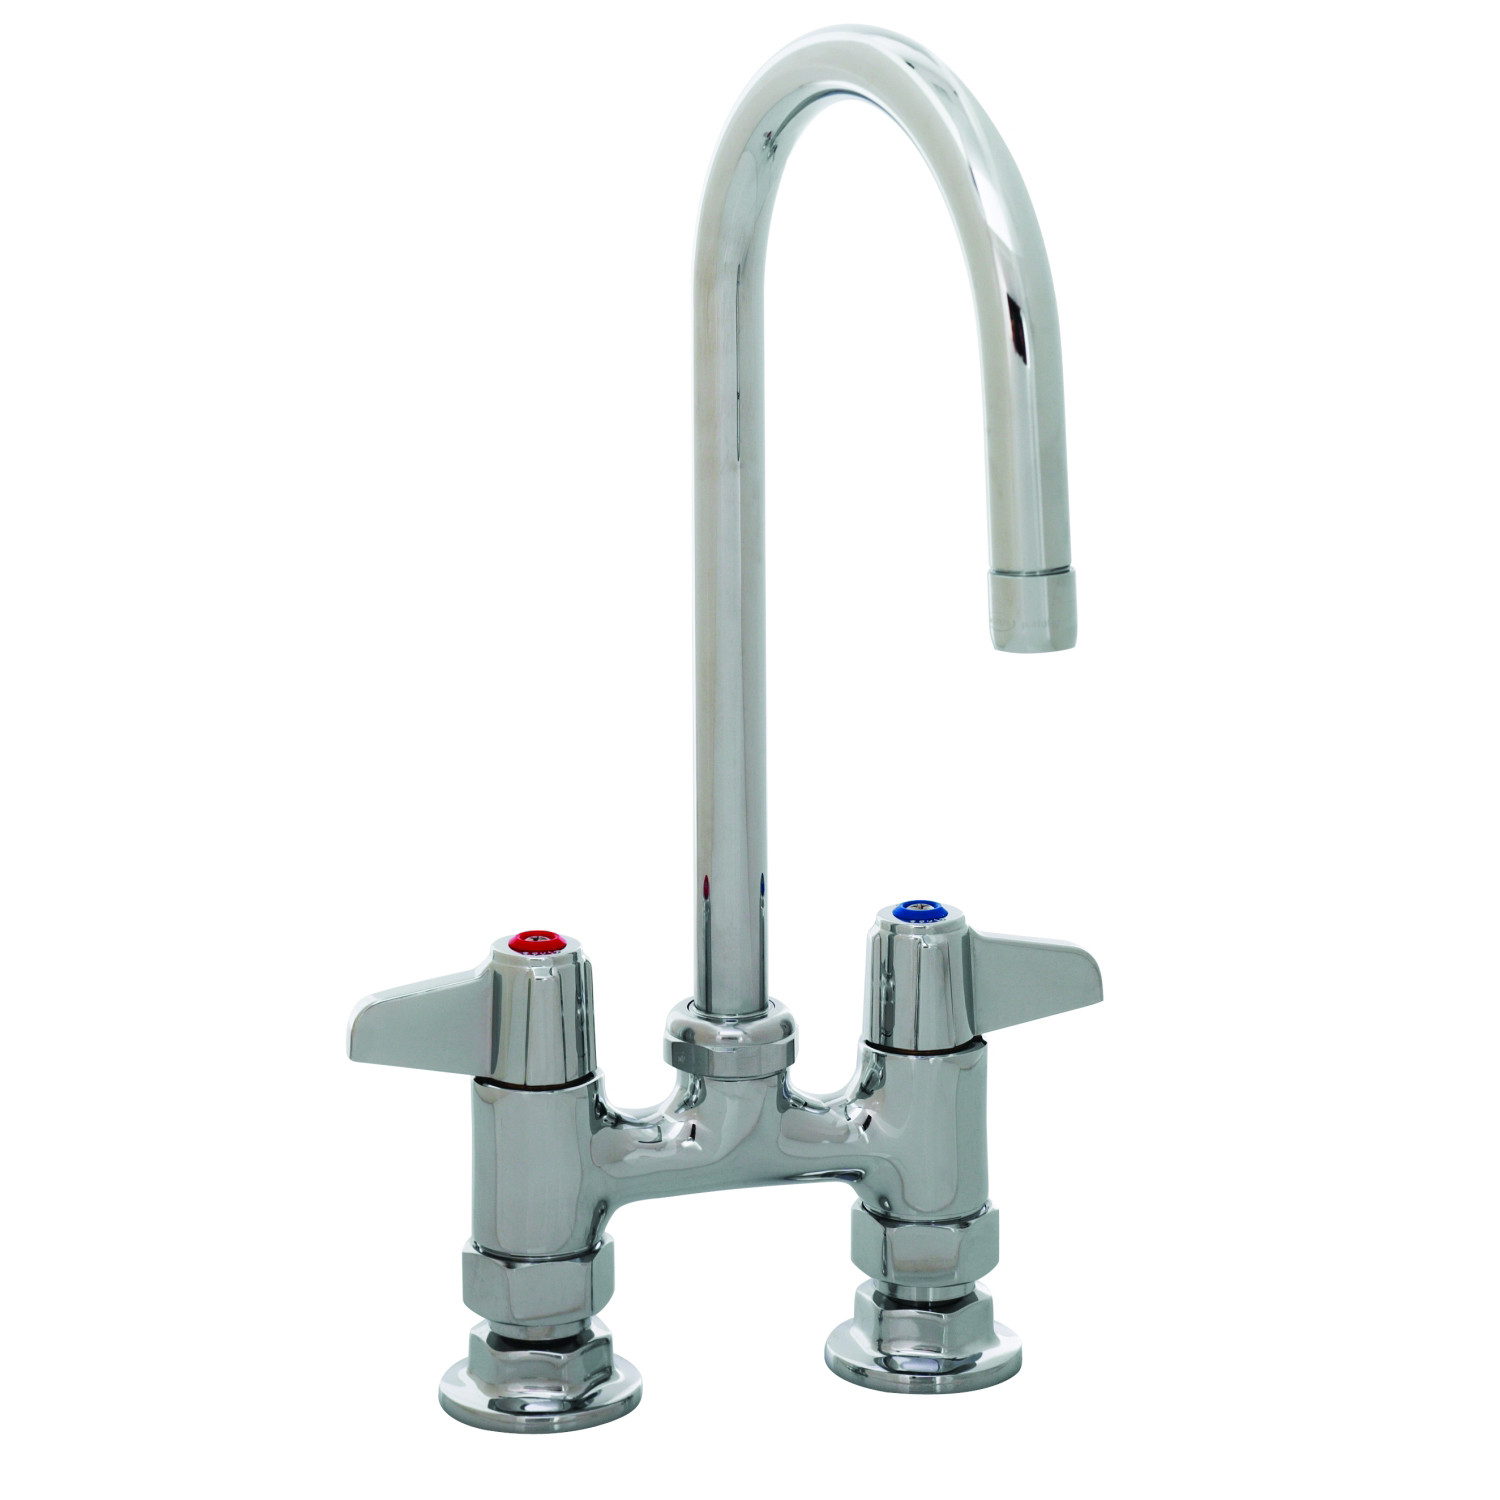 faucets perfect faucet info ideas b ts pantry brass picture sink depot s t nokton culinary collection